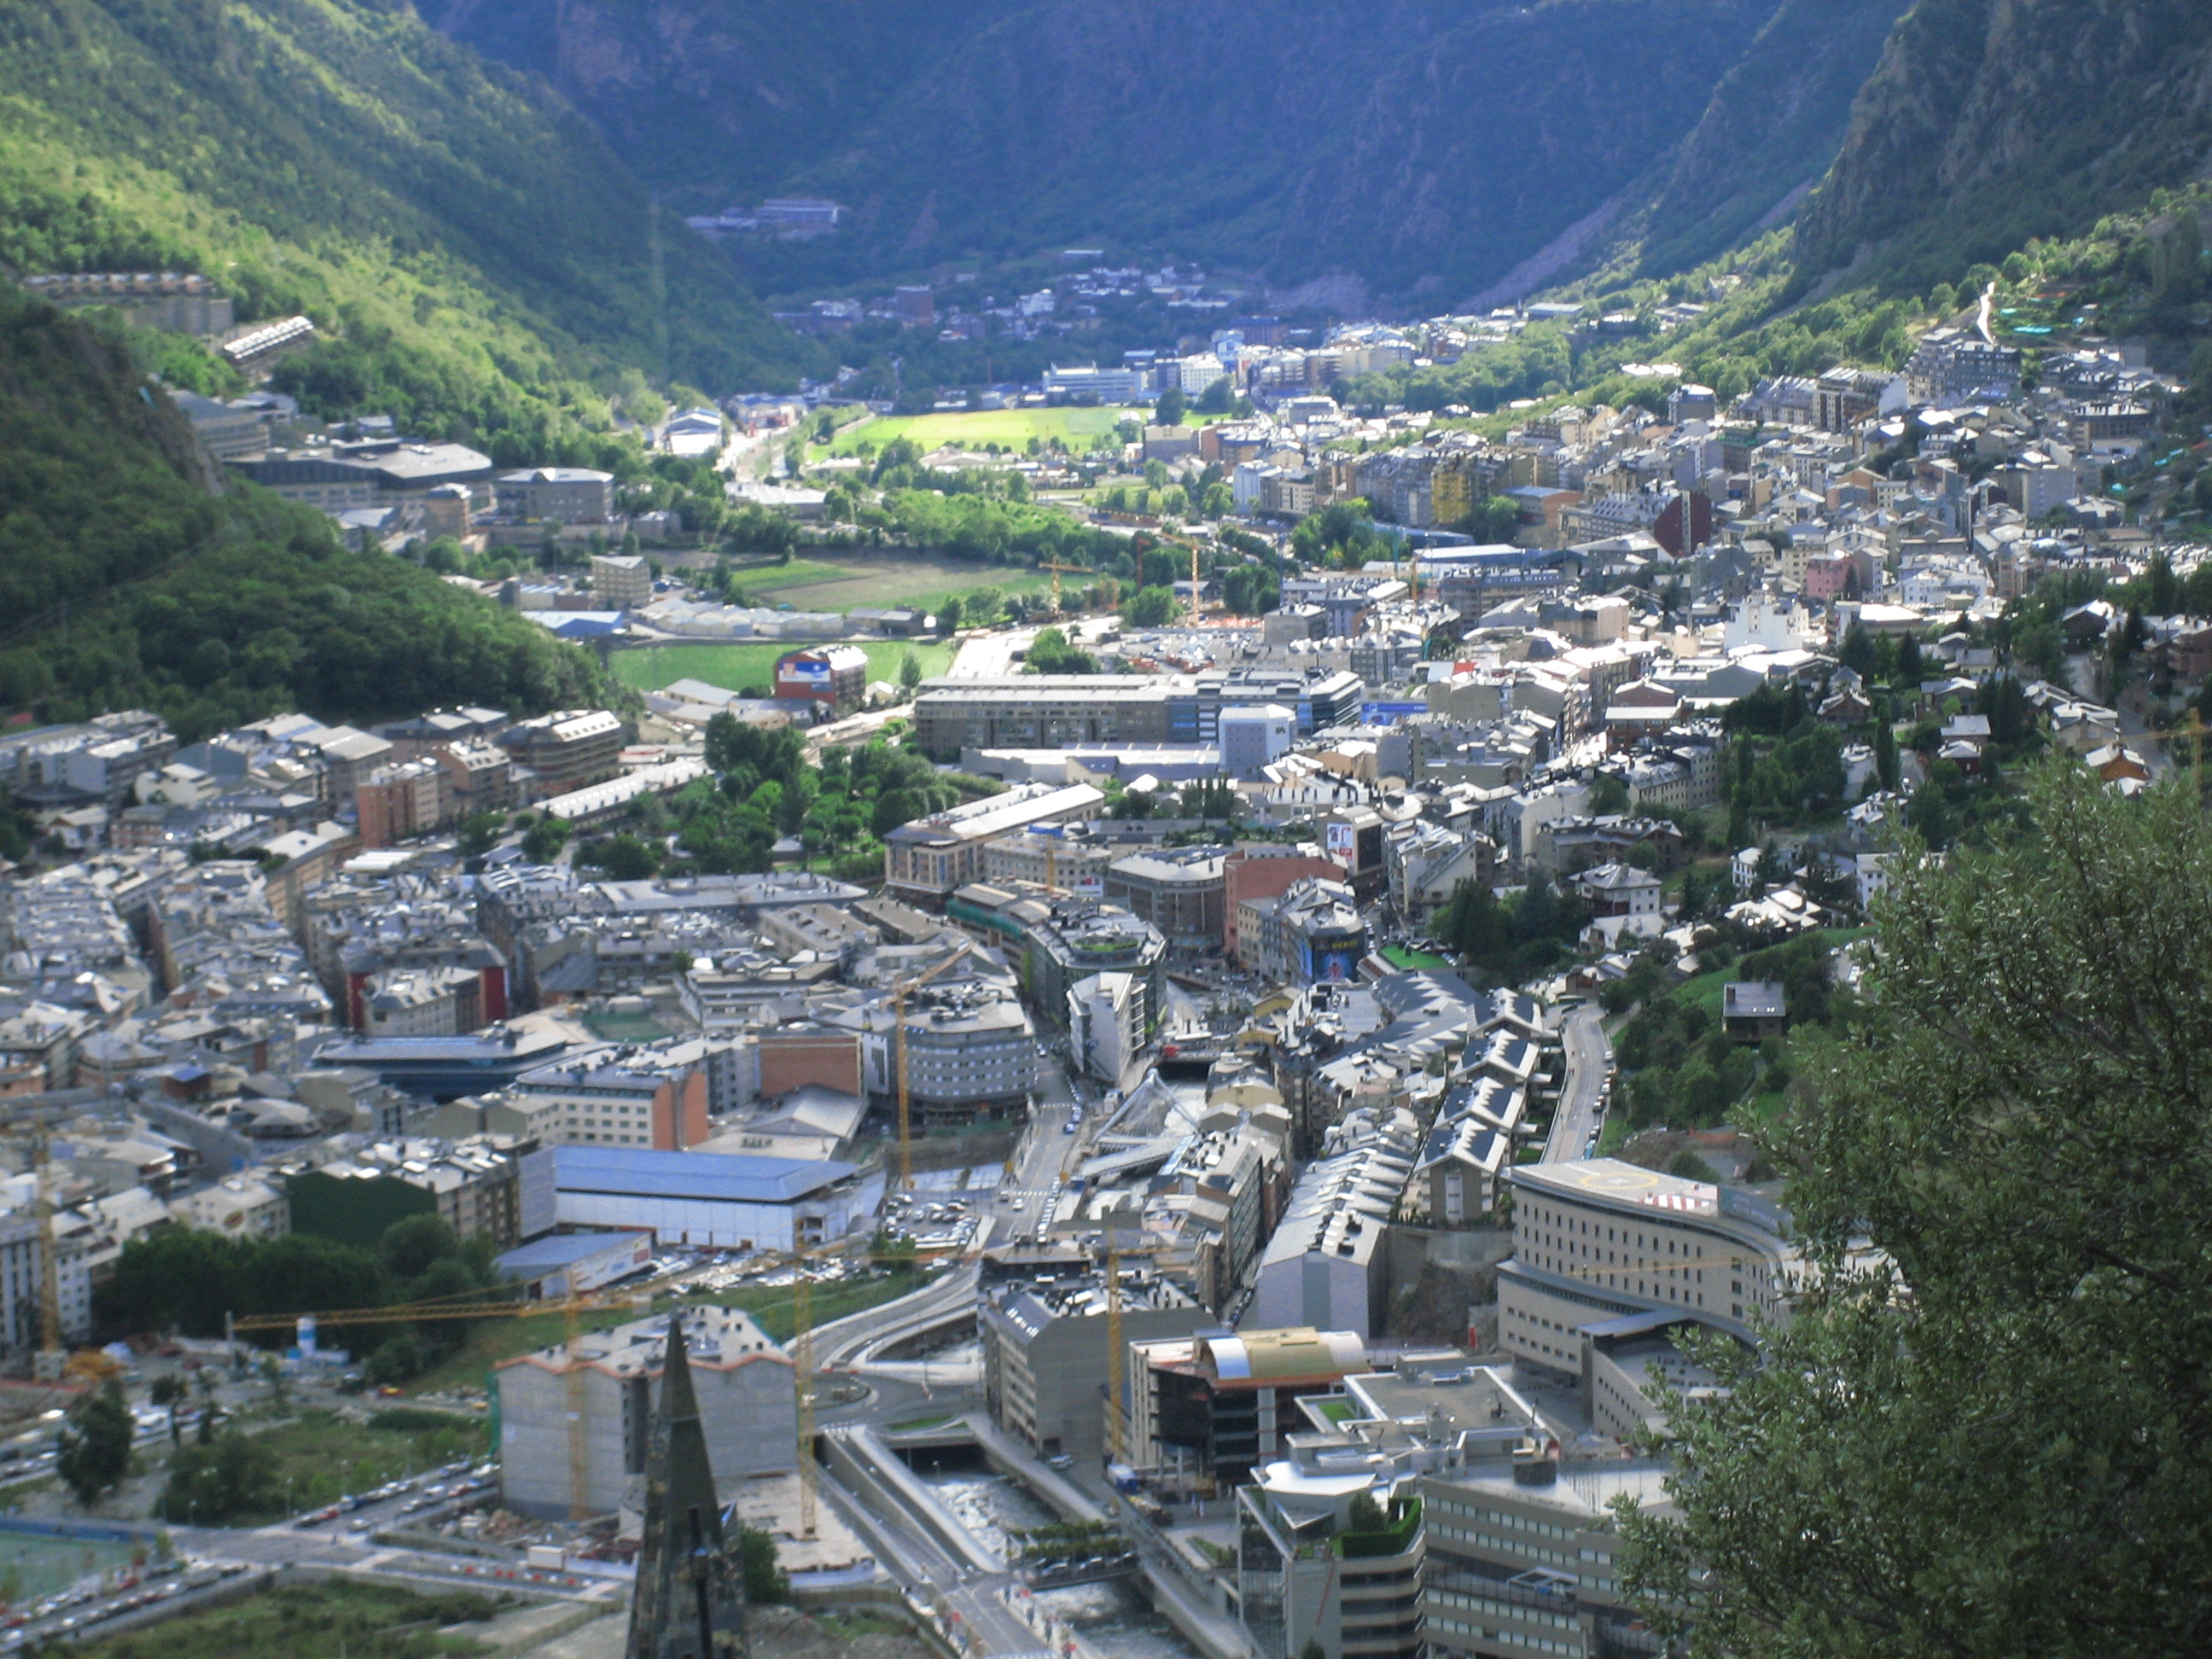 andorrA 1 Andorra  a new country between Spain and France